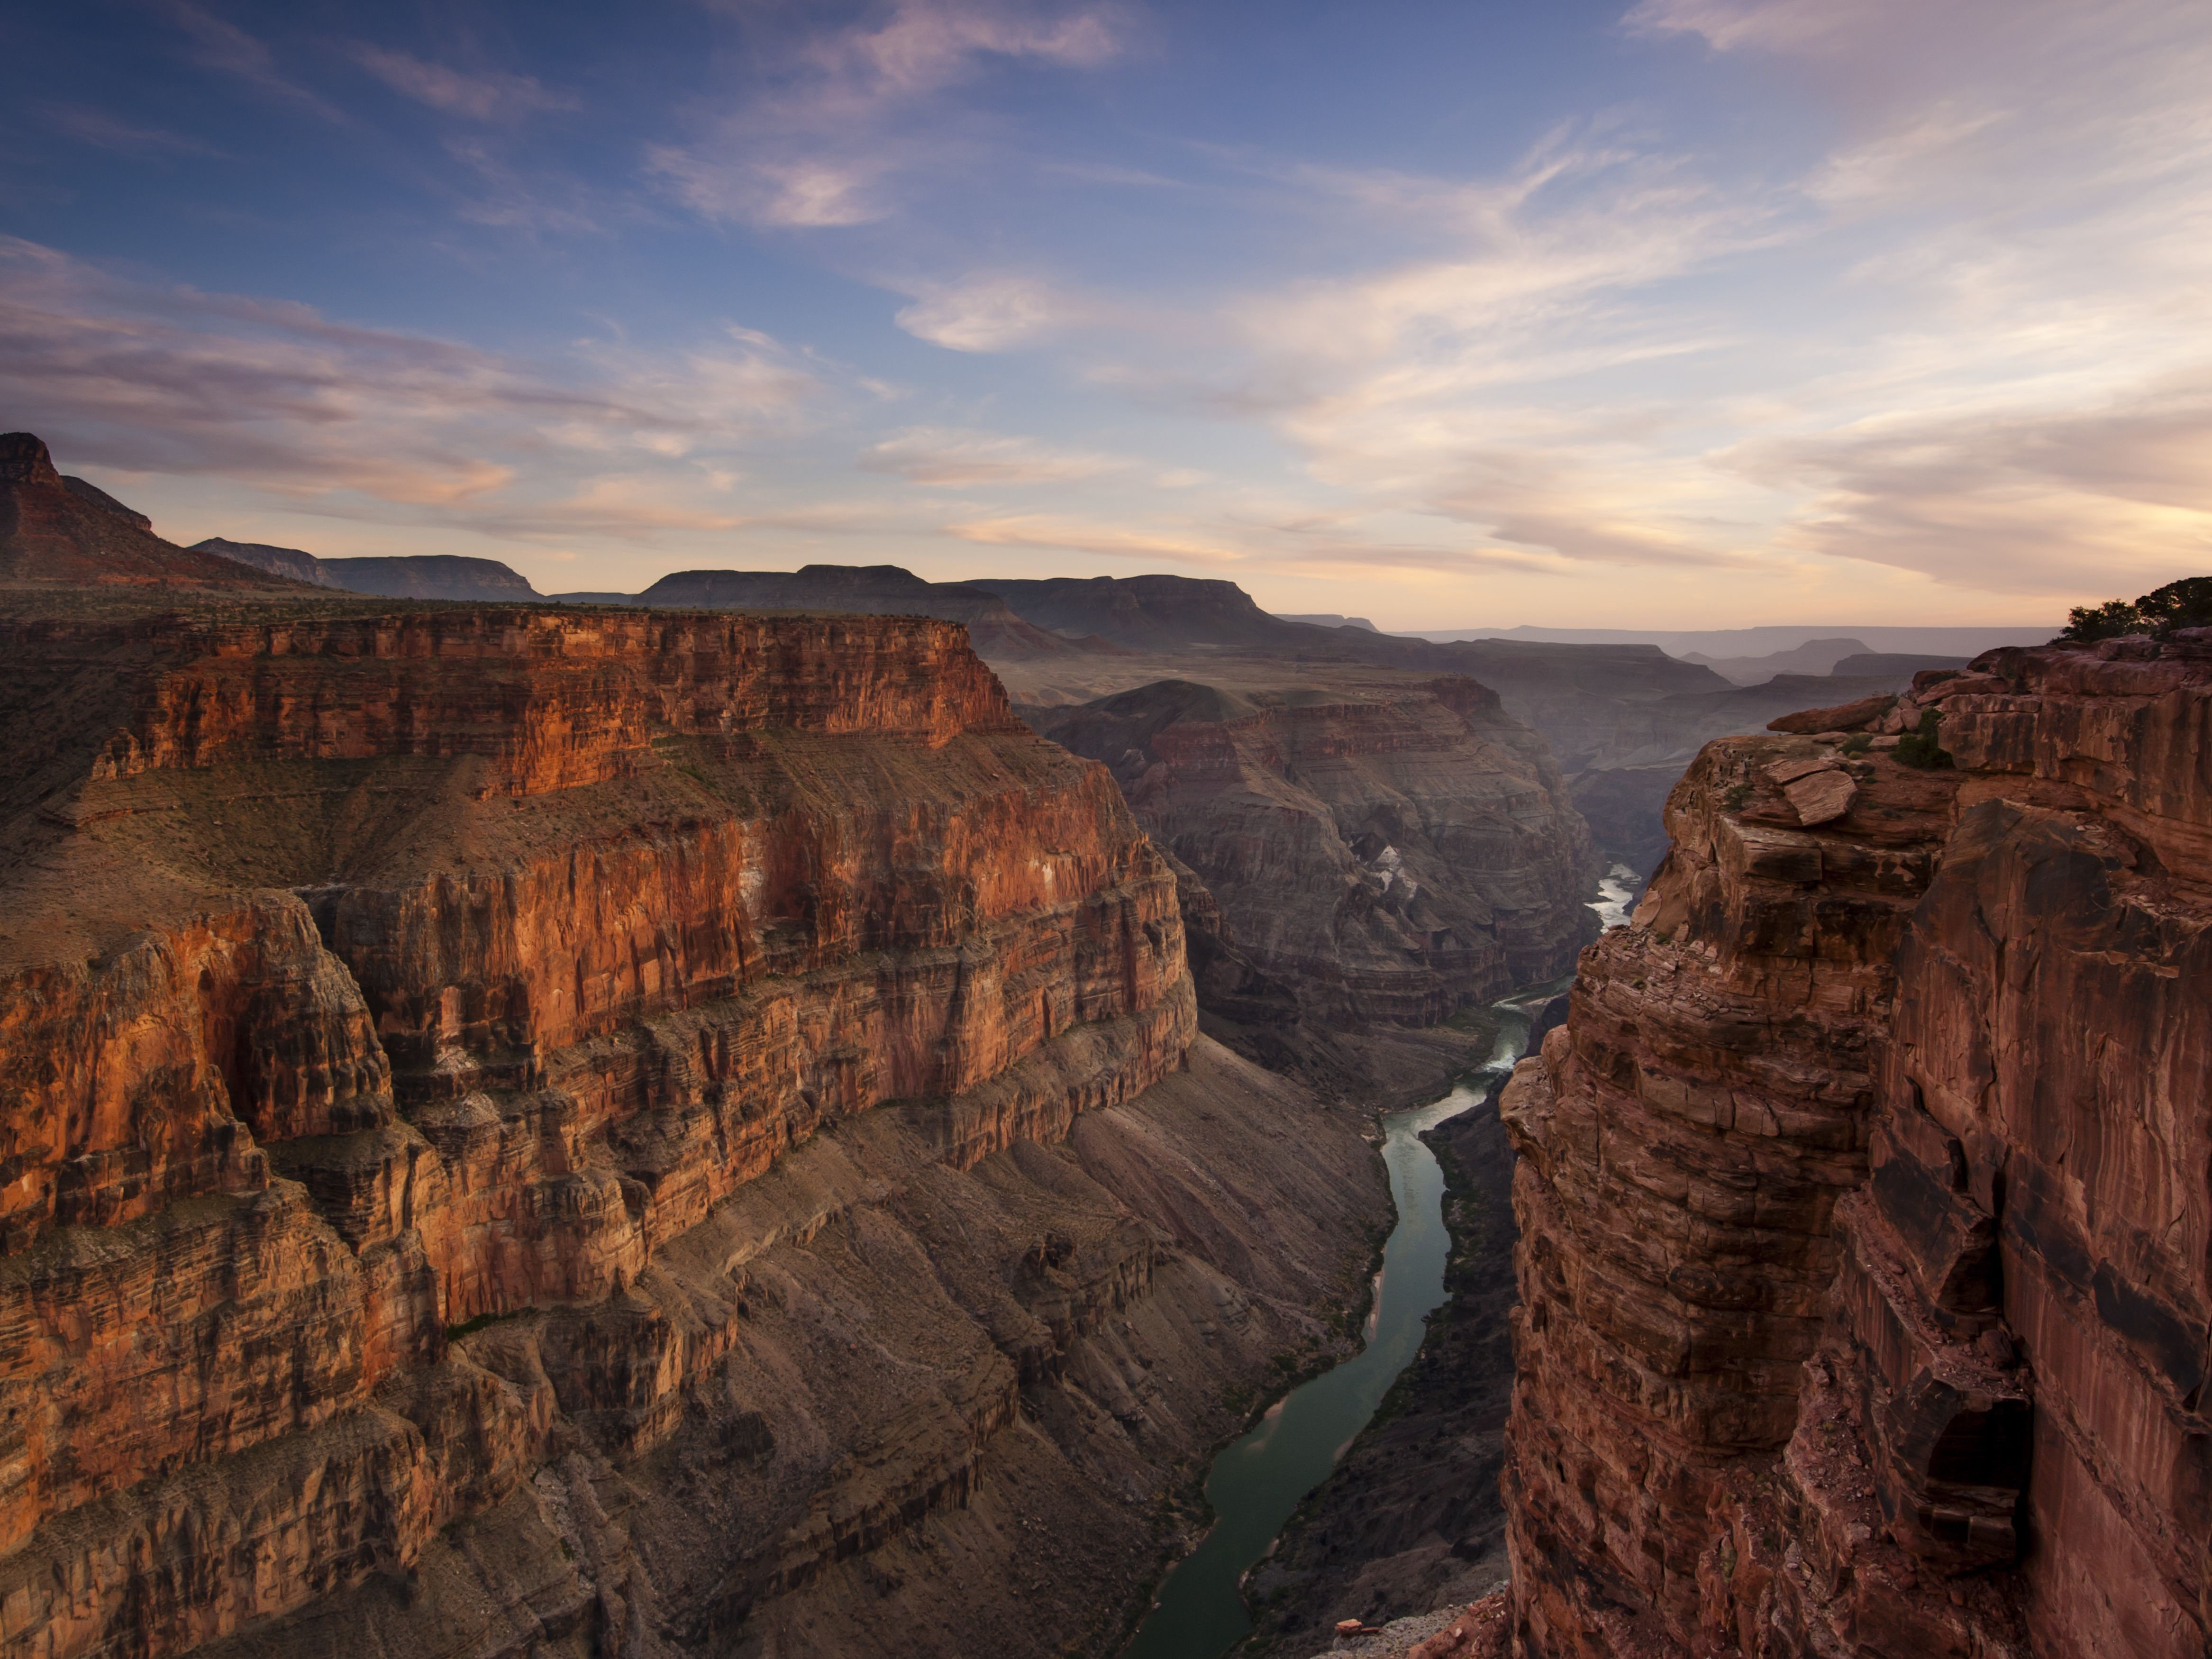 A Travel Guide for Visiting Grand Canyon on a Budget